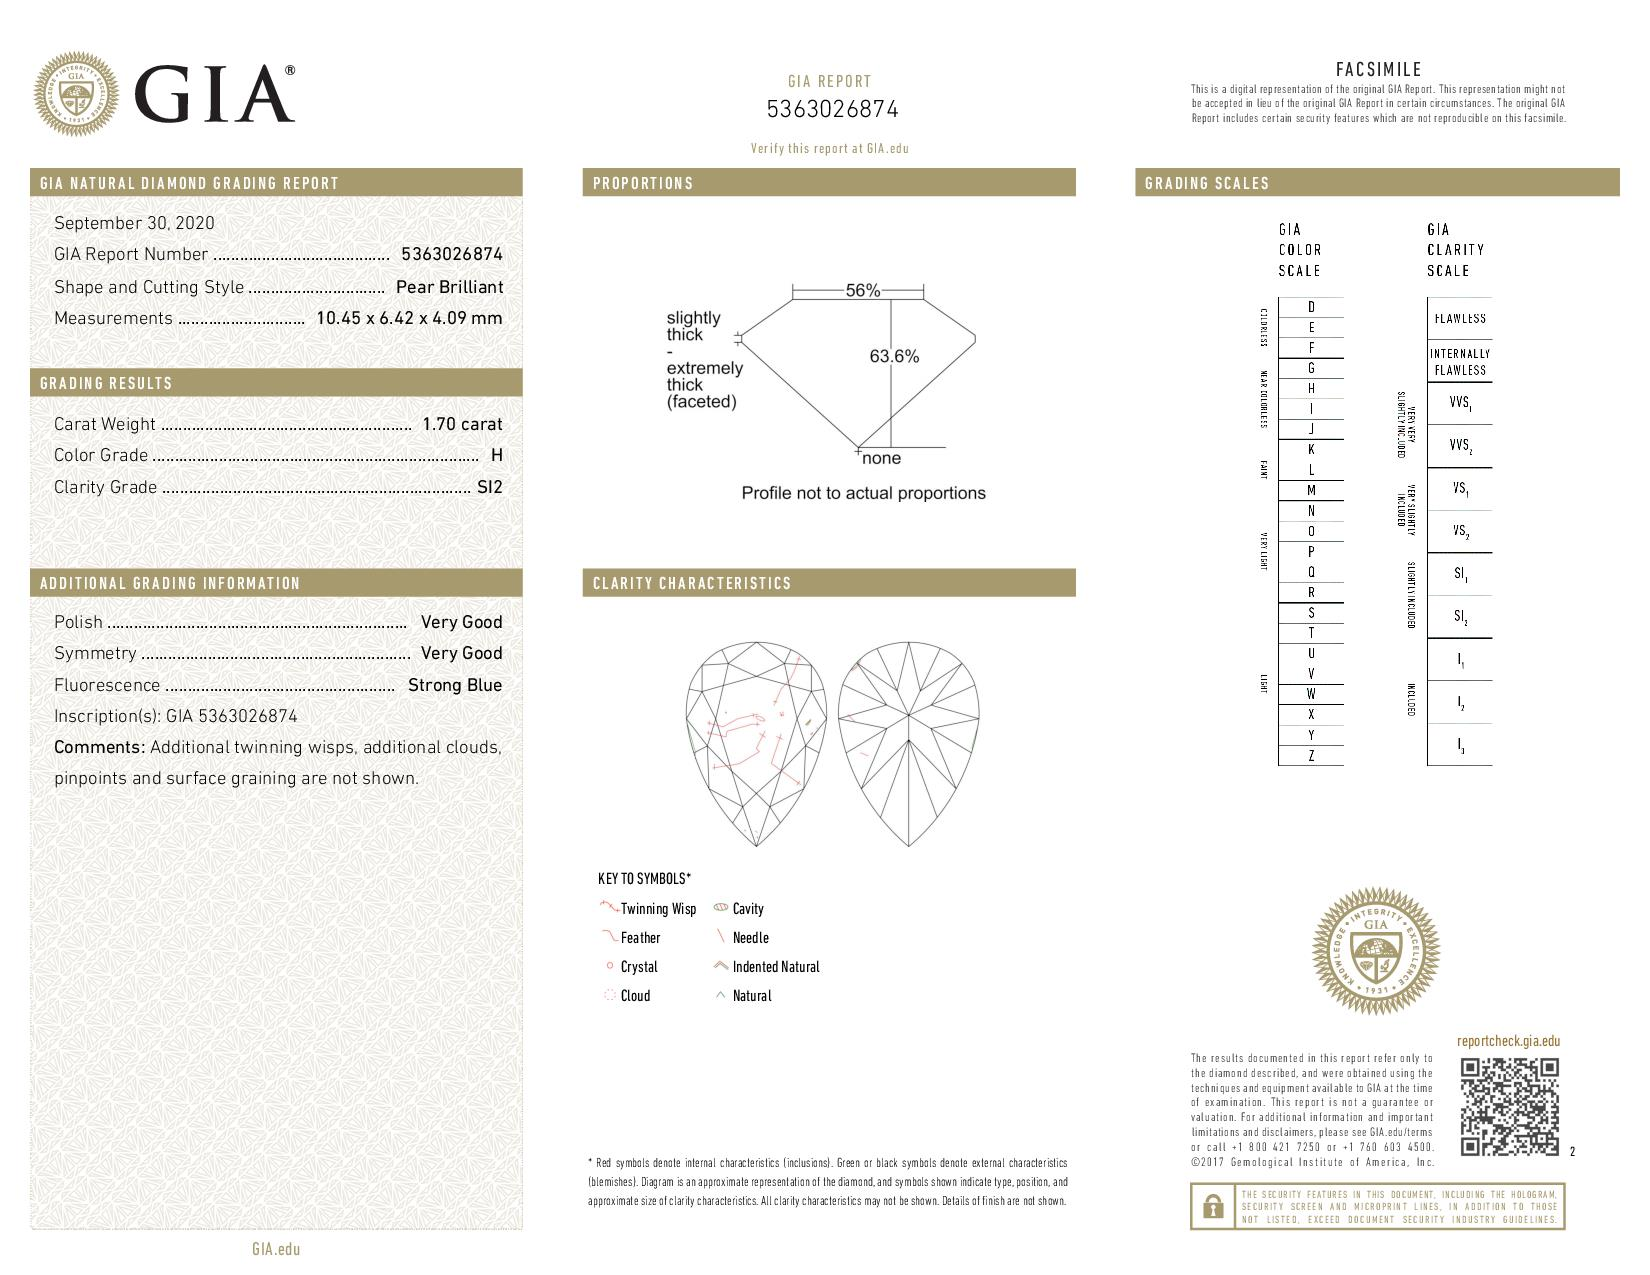 This is a 1.70 carat pear shape, H color, SI2 clarity natural diamond accompanied by a GIA grading report.